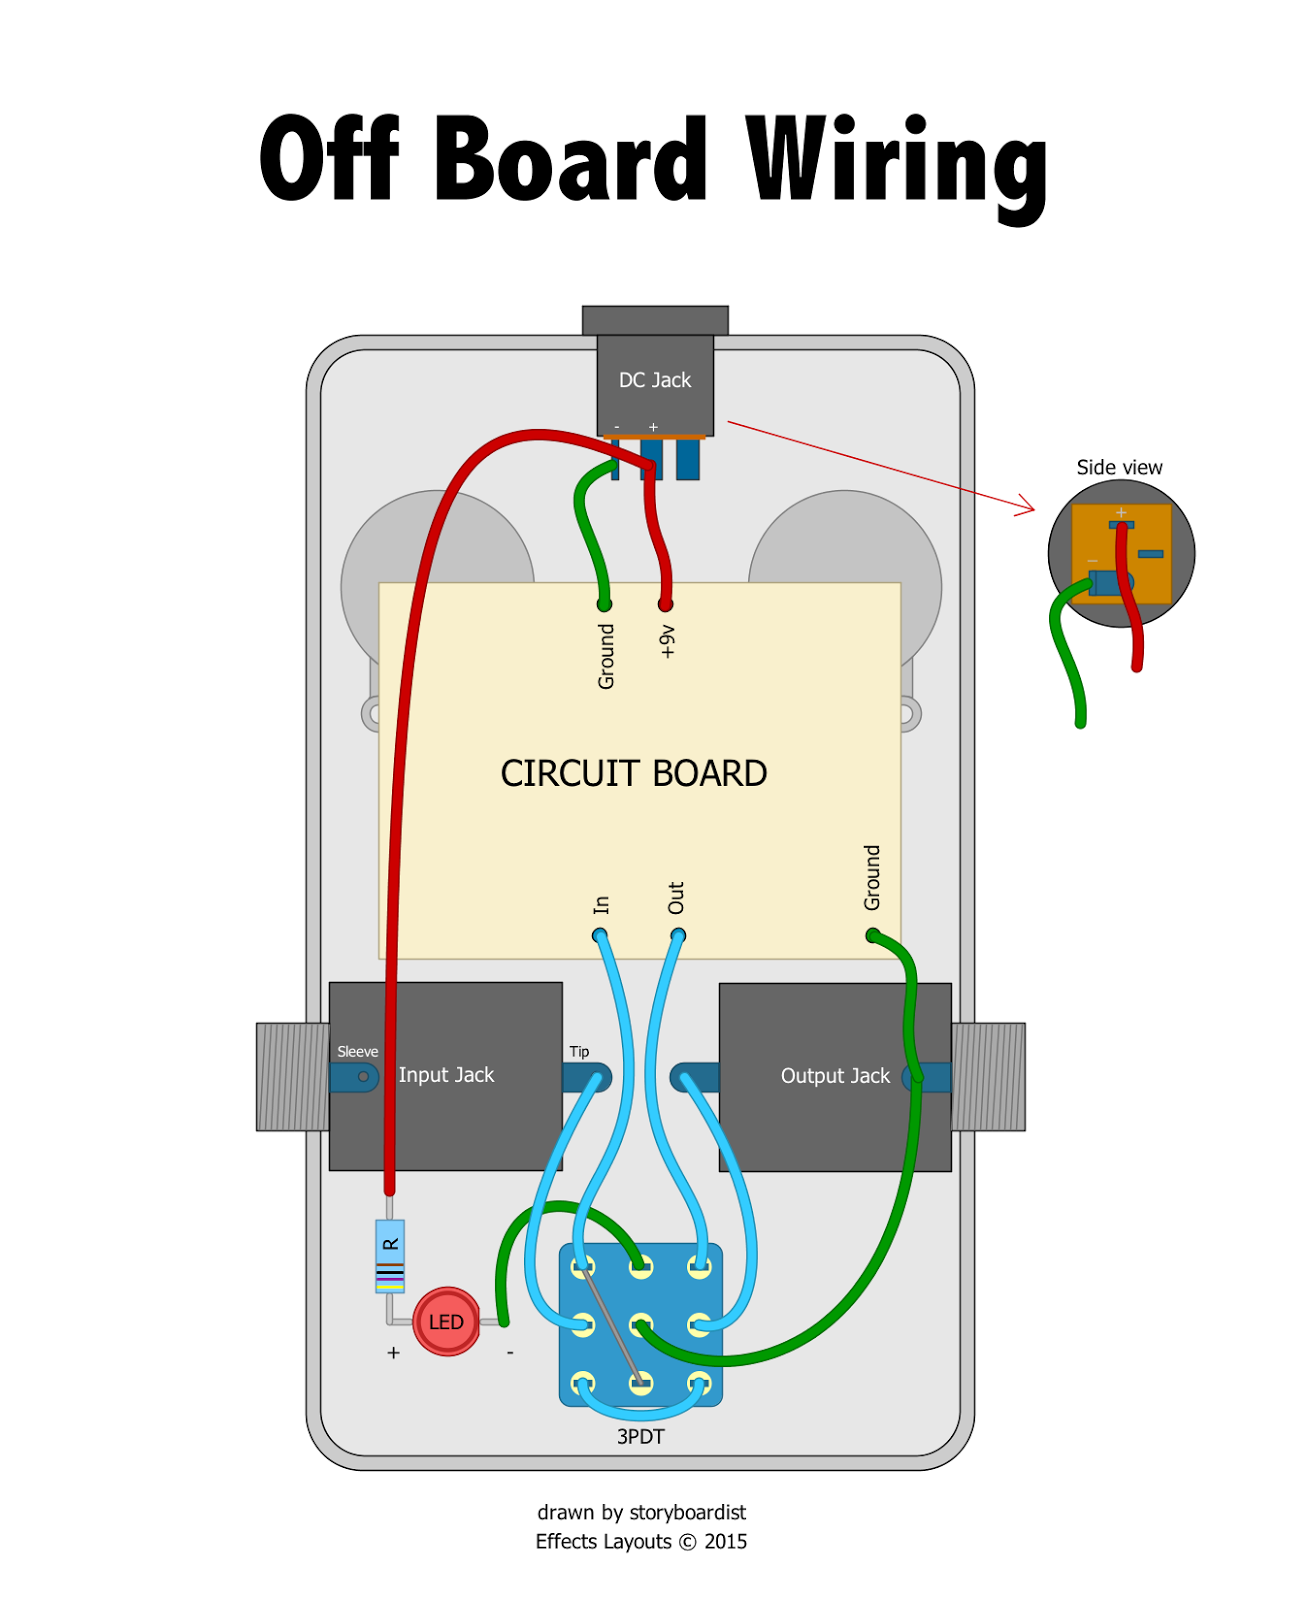 Dpdt Footswitch Wiring Diagram 30 Images Spdt Switch Off2bboard2bwiring Perf And Pcb Effects Layouts General Layout Notes Schematic